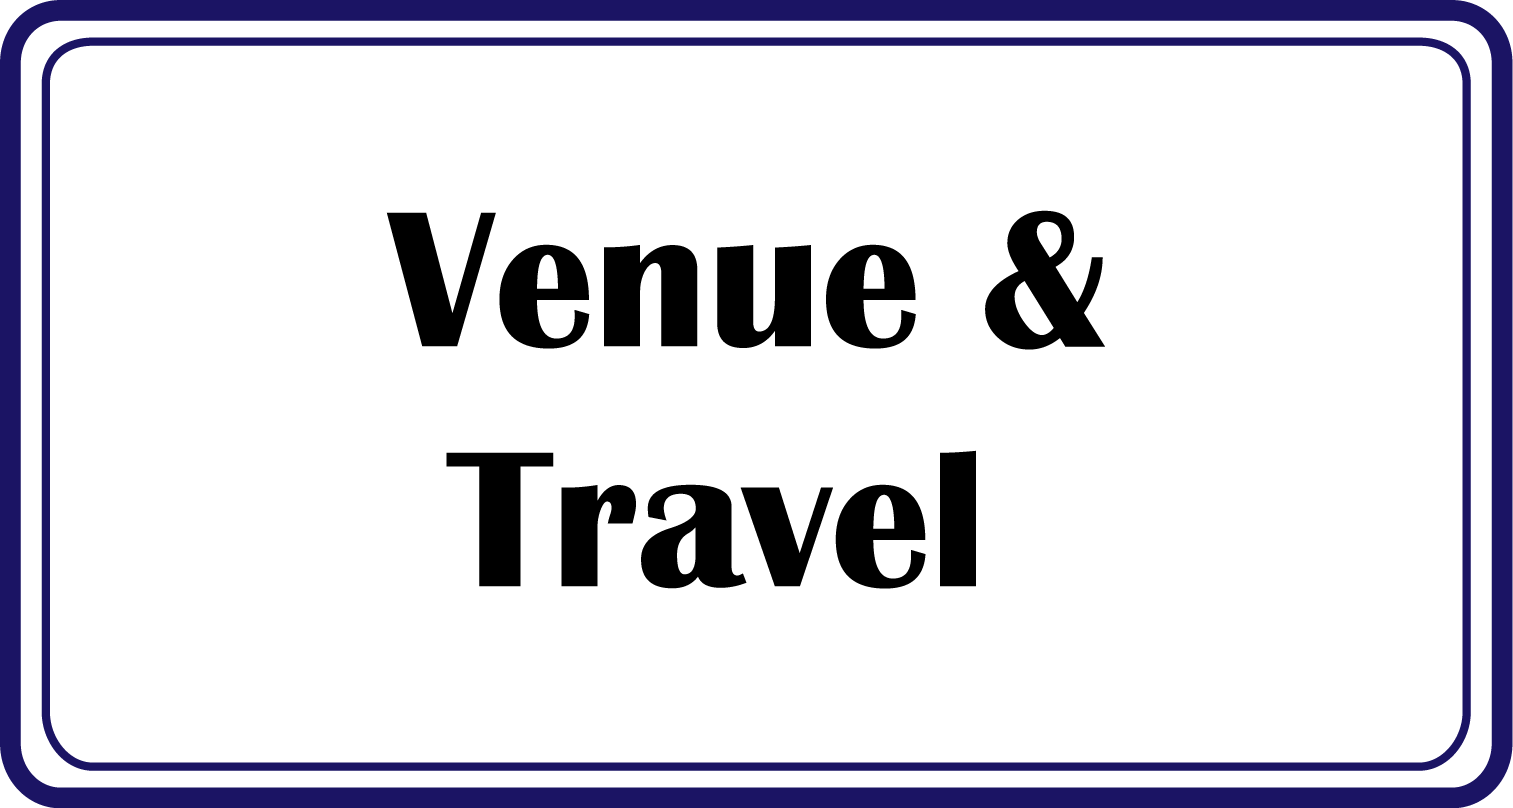 venue travel1